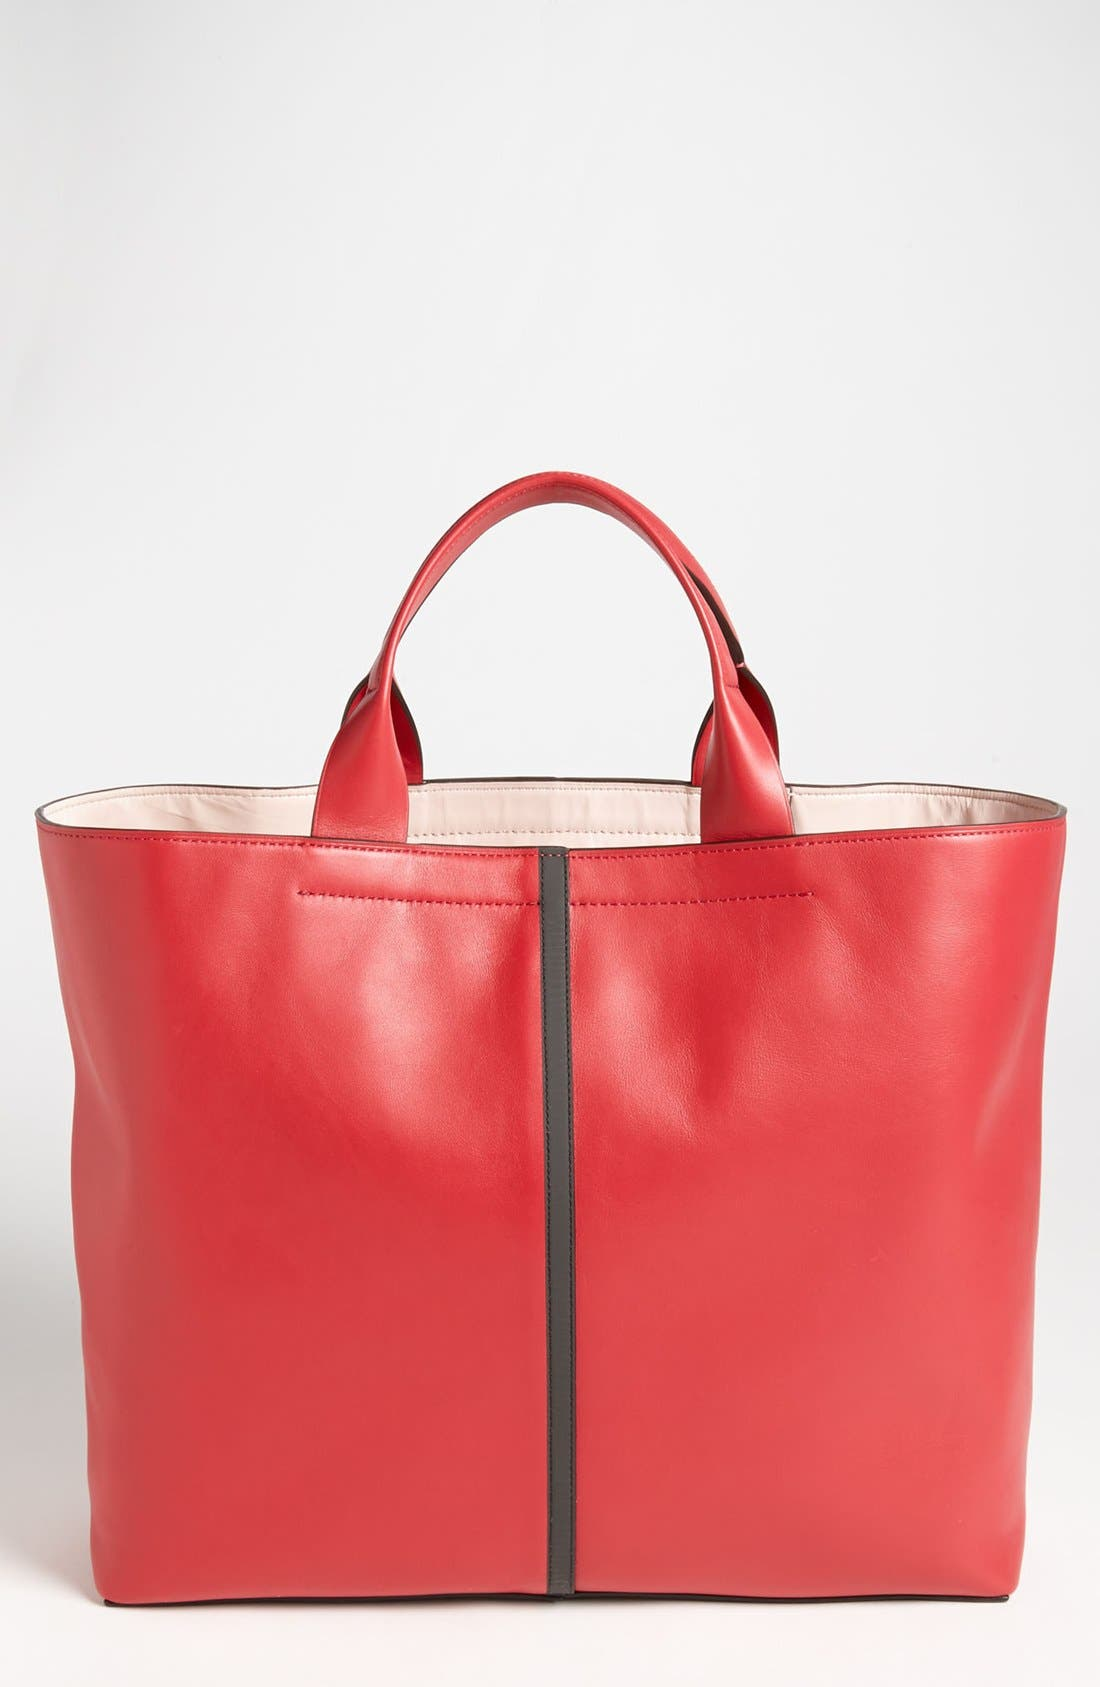 Main Image - Reed Krakoff 'Track' Glazed Leather Tote